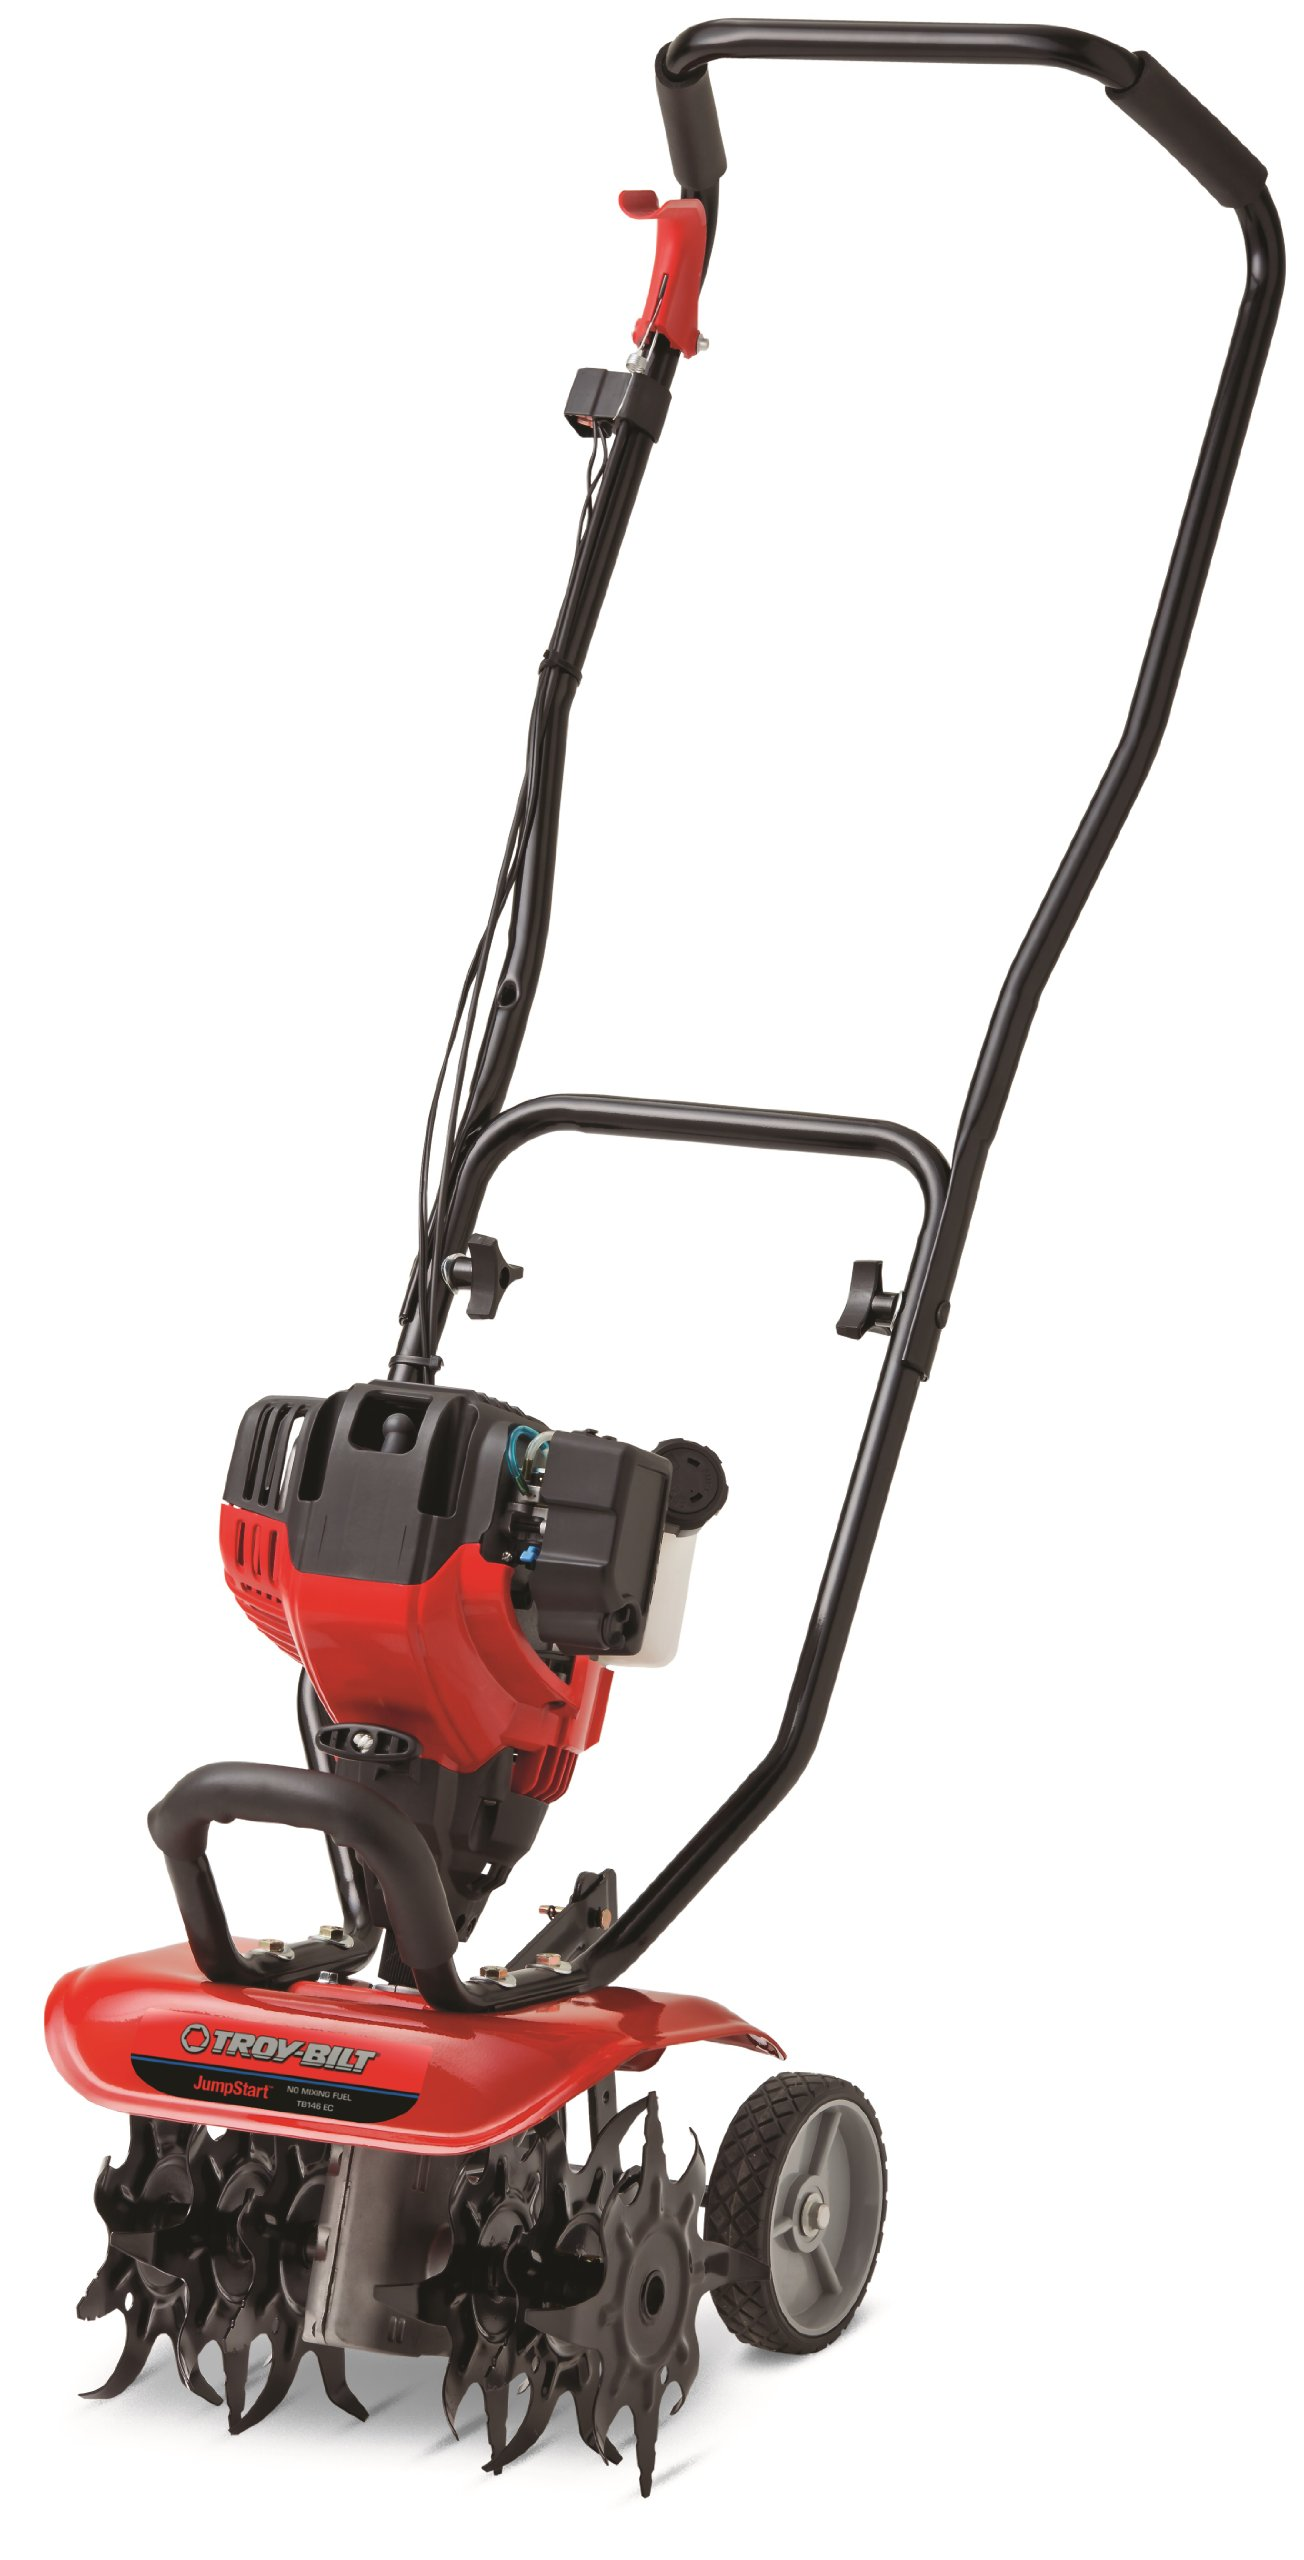 Troy-Bilt TB146 EC 29cc 4-Cycle Cultivator with JumpStart Technology by Troy-Bilt